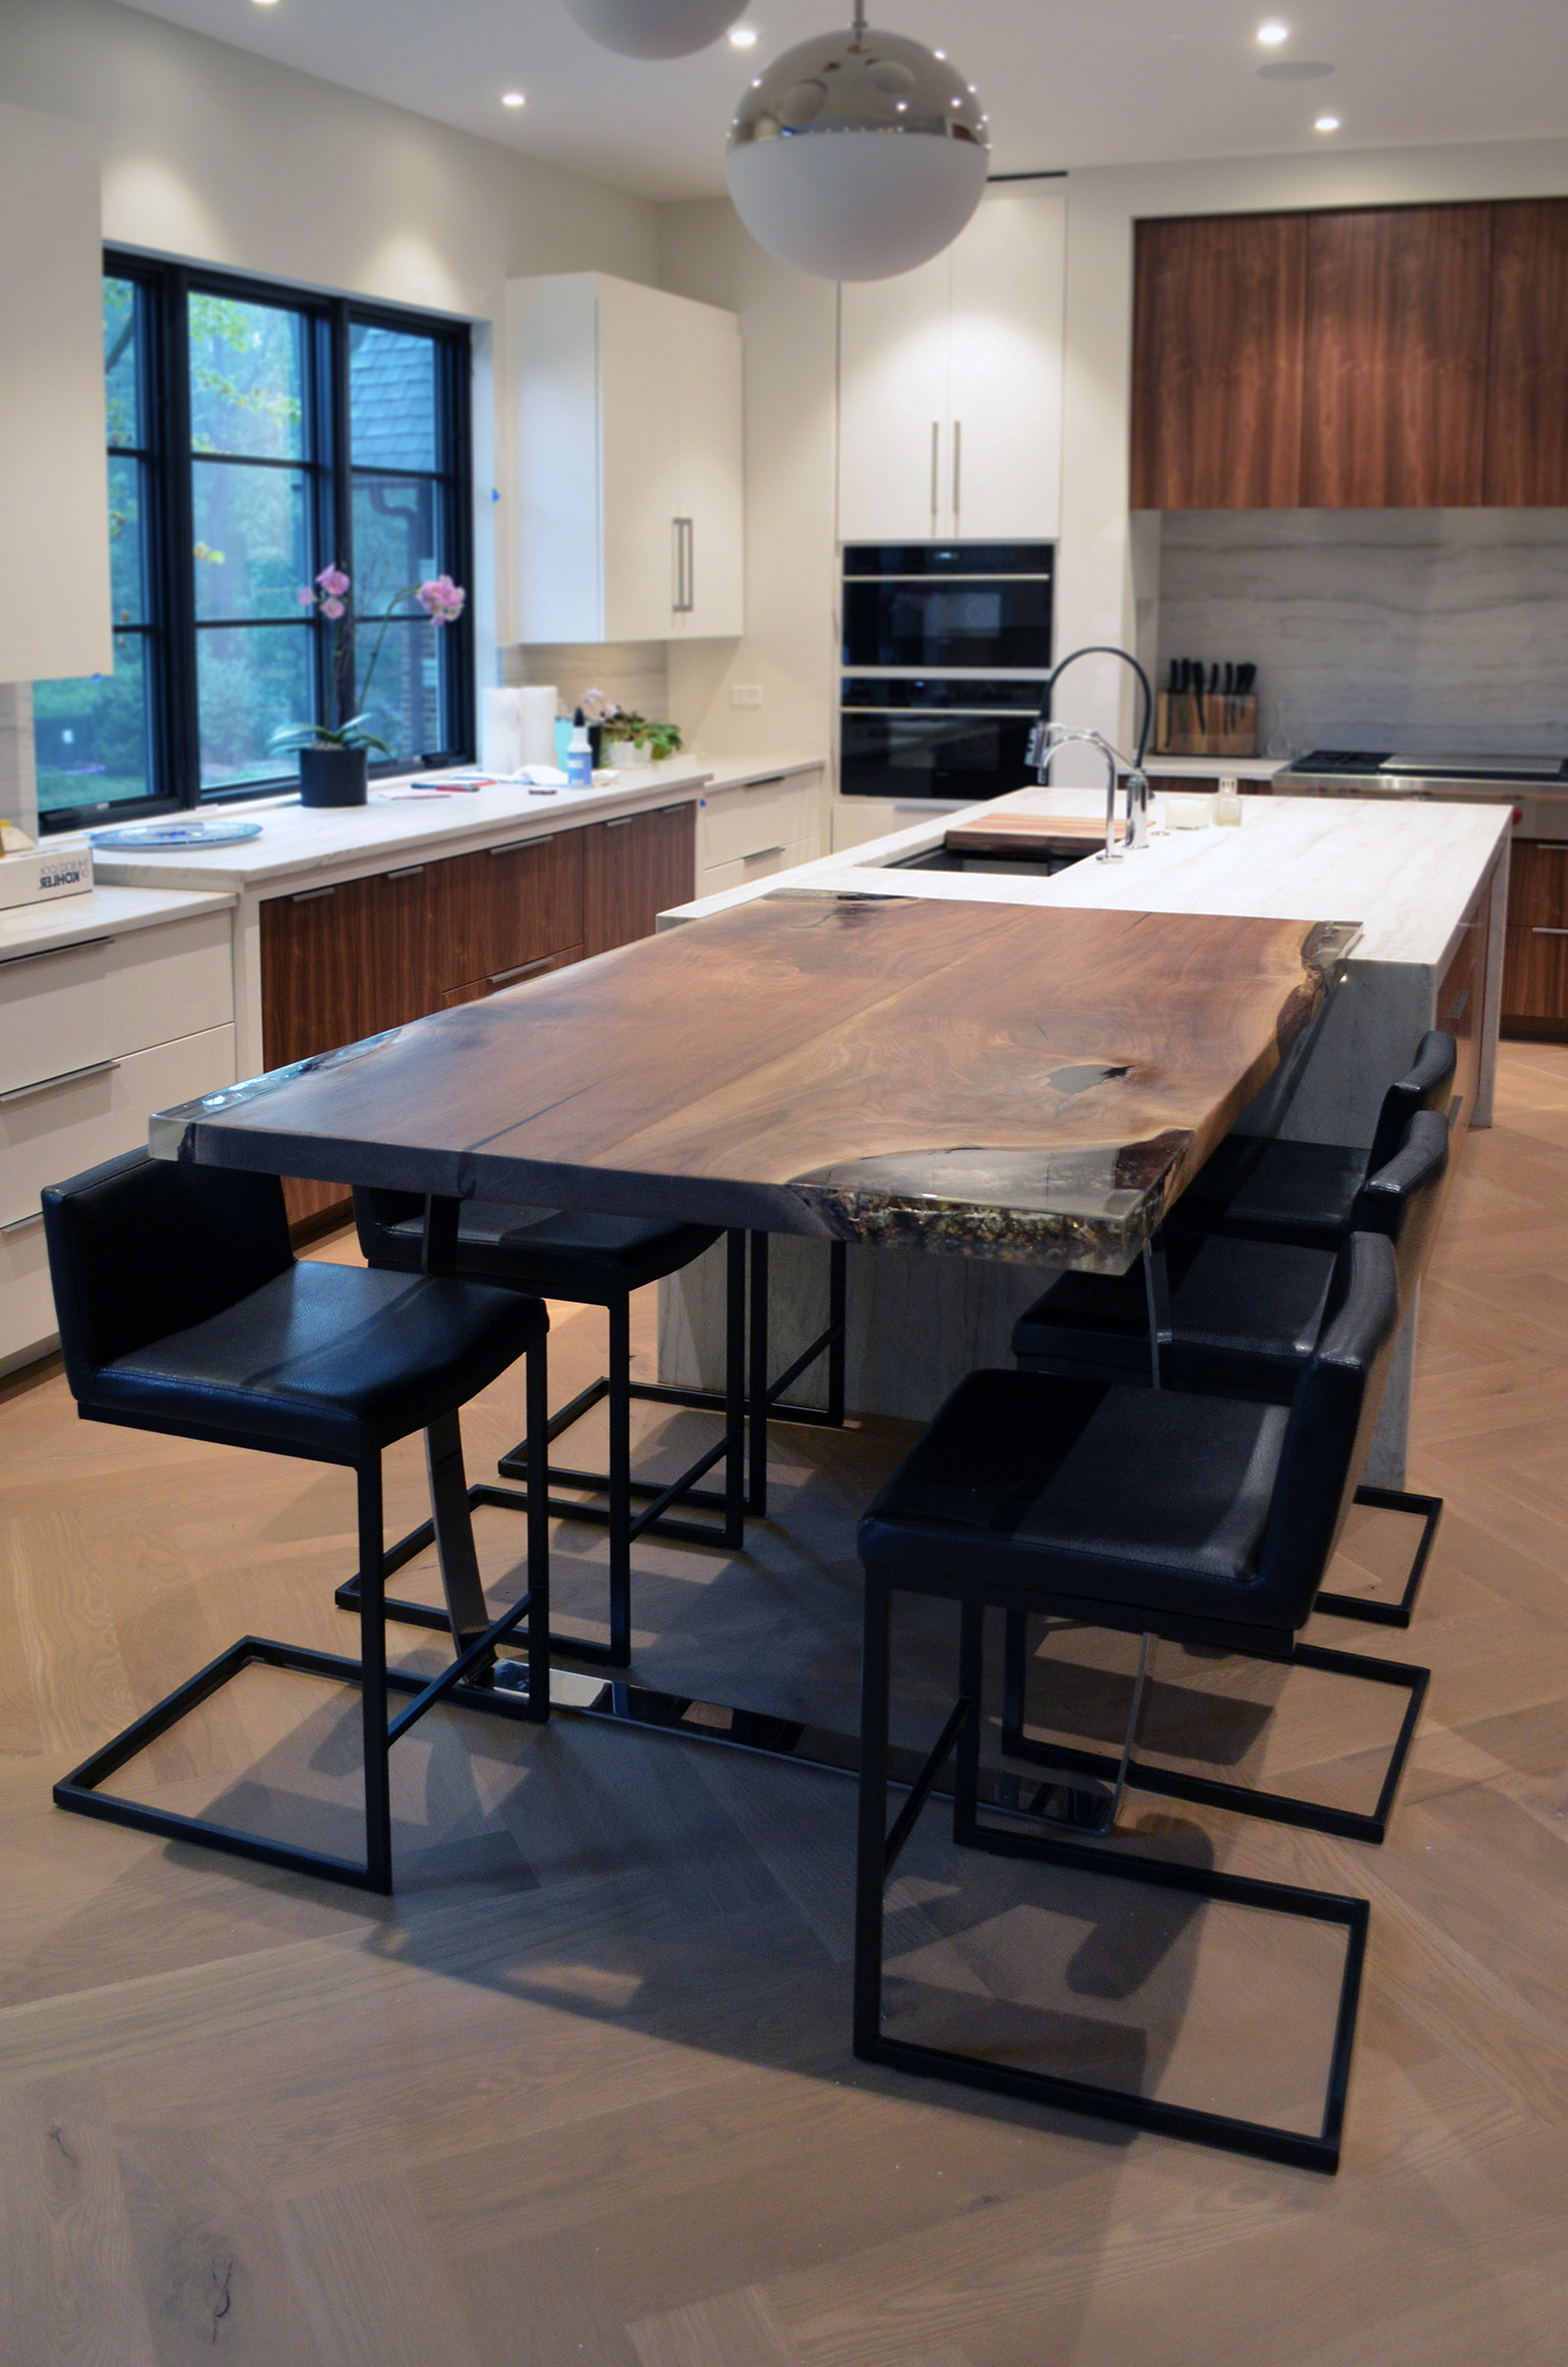 Latest Walnut Finish Live Edge Wood Contemporary Dining Tables For Live Edge Walnut Epoxy Inlay Dining Table – Abodeacious (View 21 of 30)